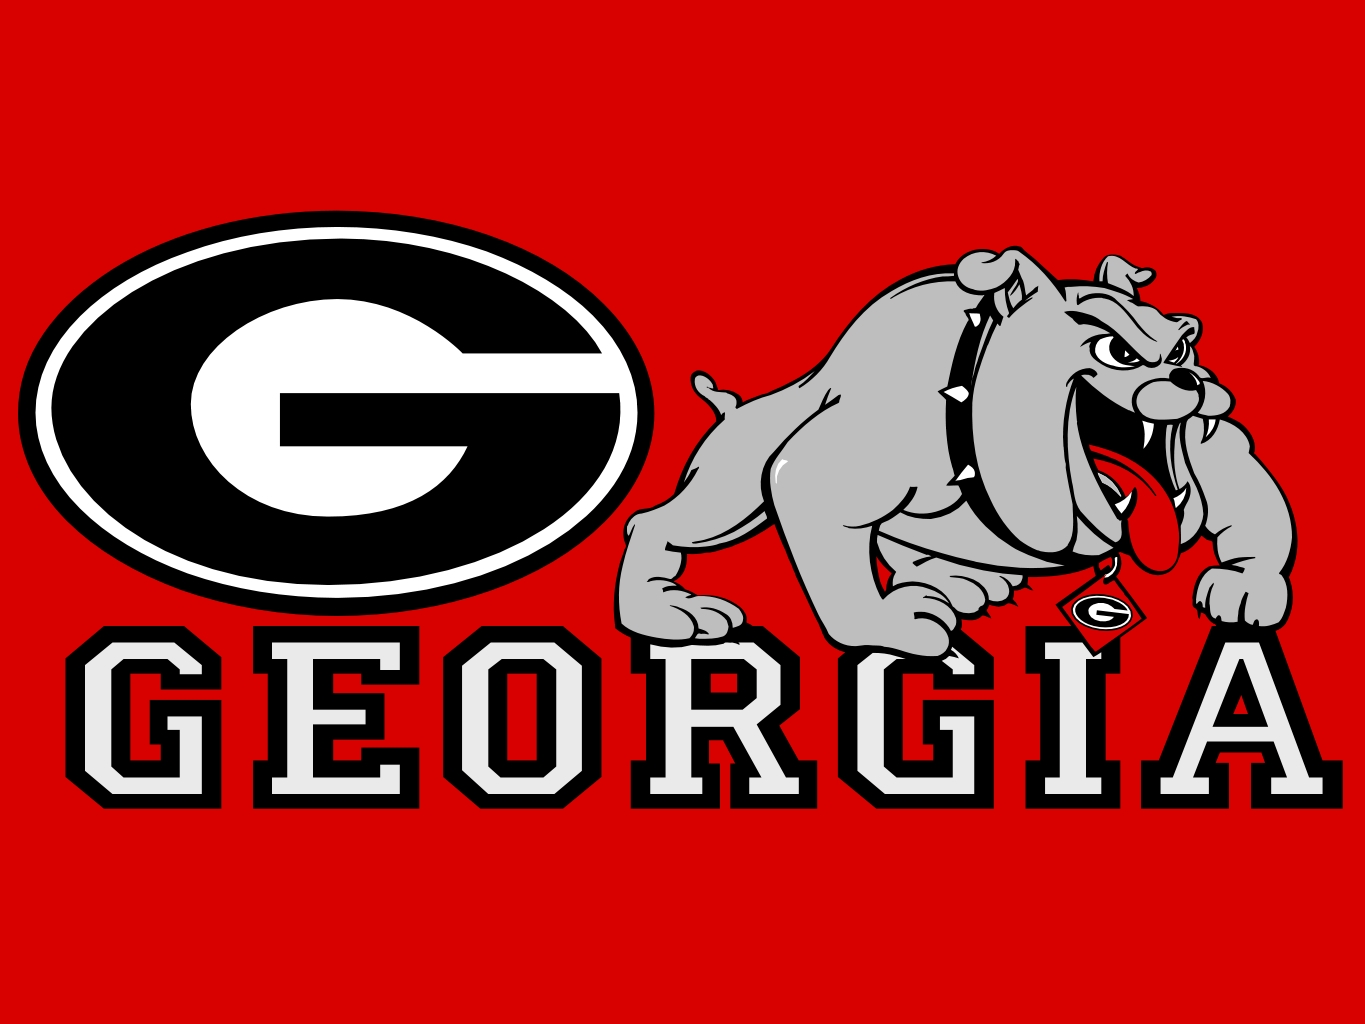 Collection of Uga clipart.